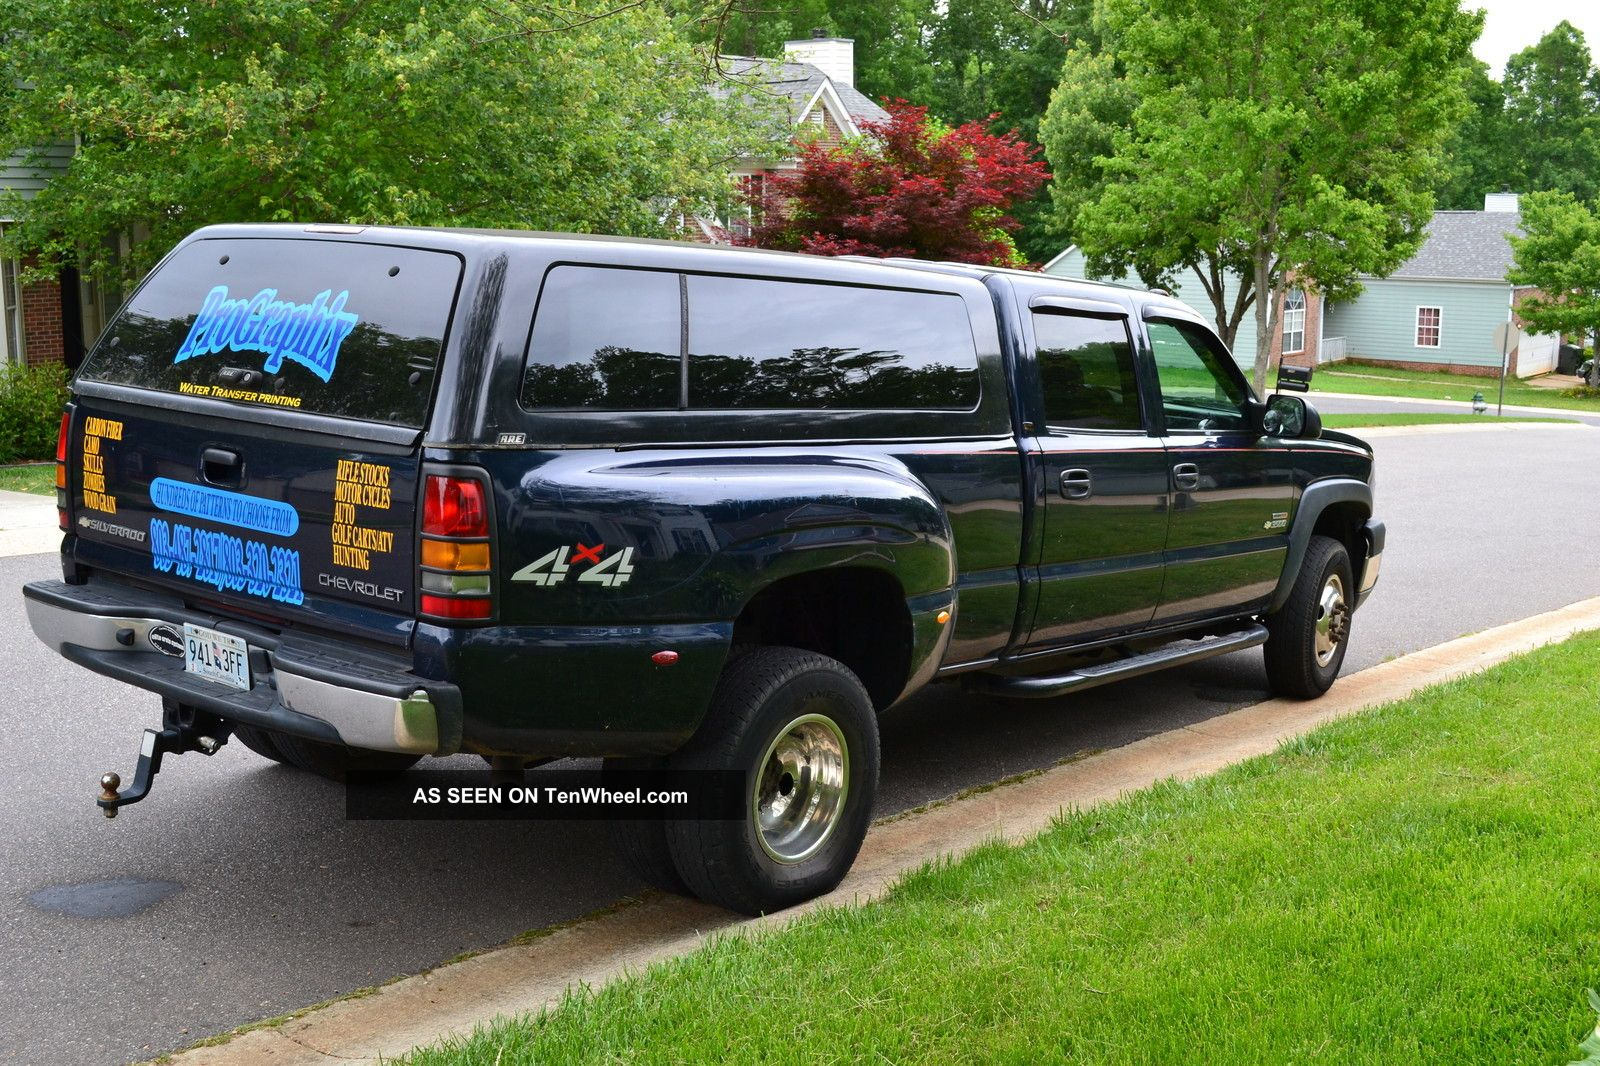 2005 Chevy Silverado 3500 Lt Duramax Diesel Dually Silverado 3500 photo